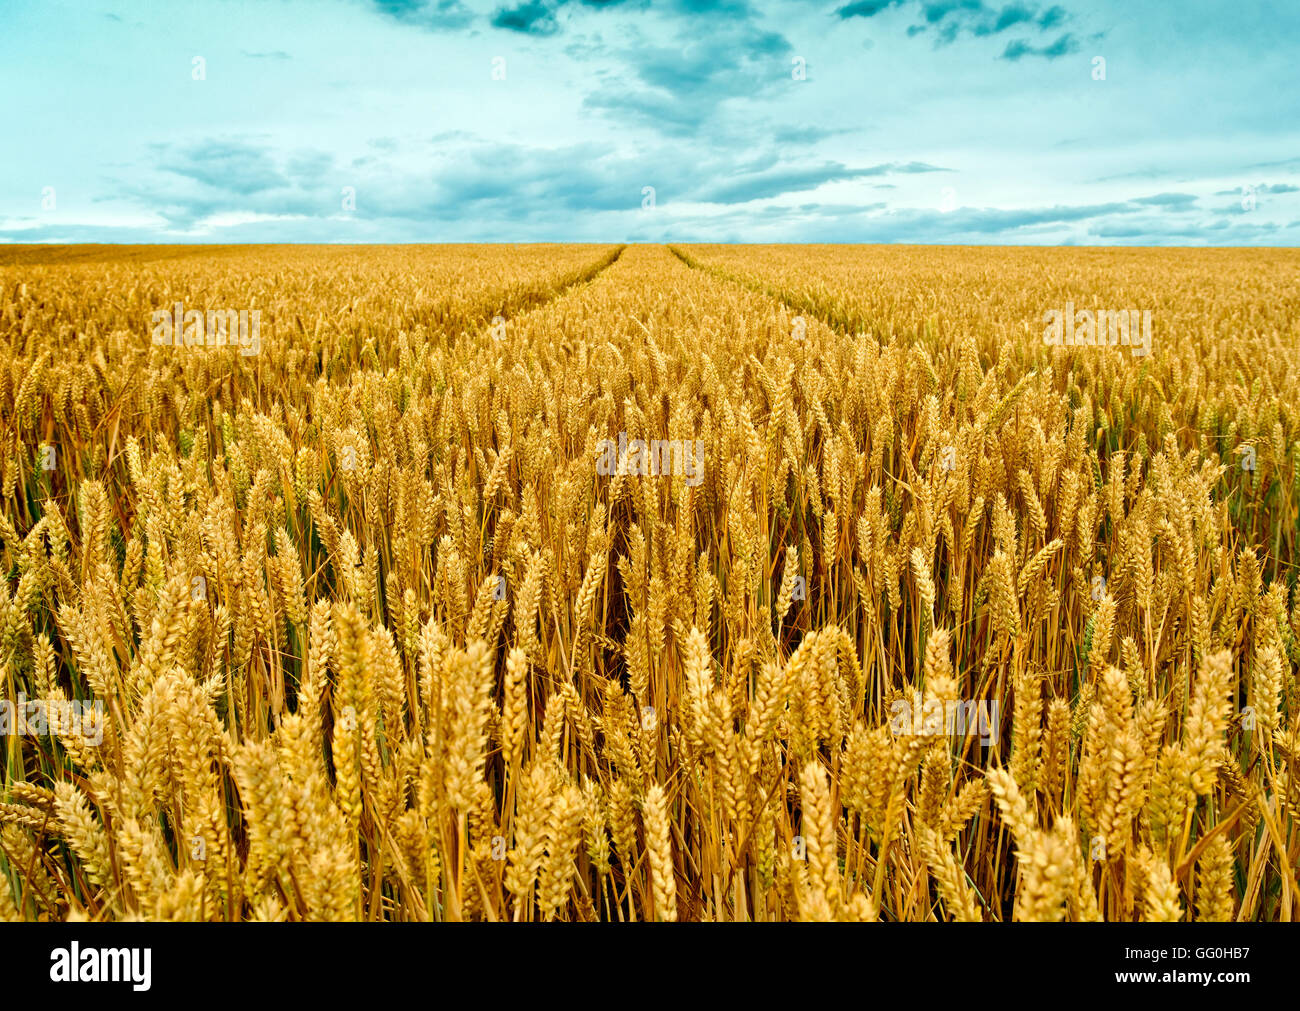 WHEATFIELD OR FIELD OF GROWING WHEAT IN THE UK - Stock Image